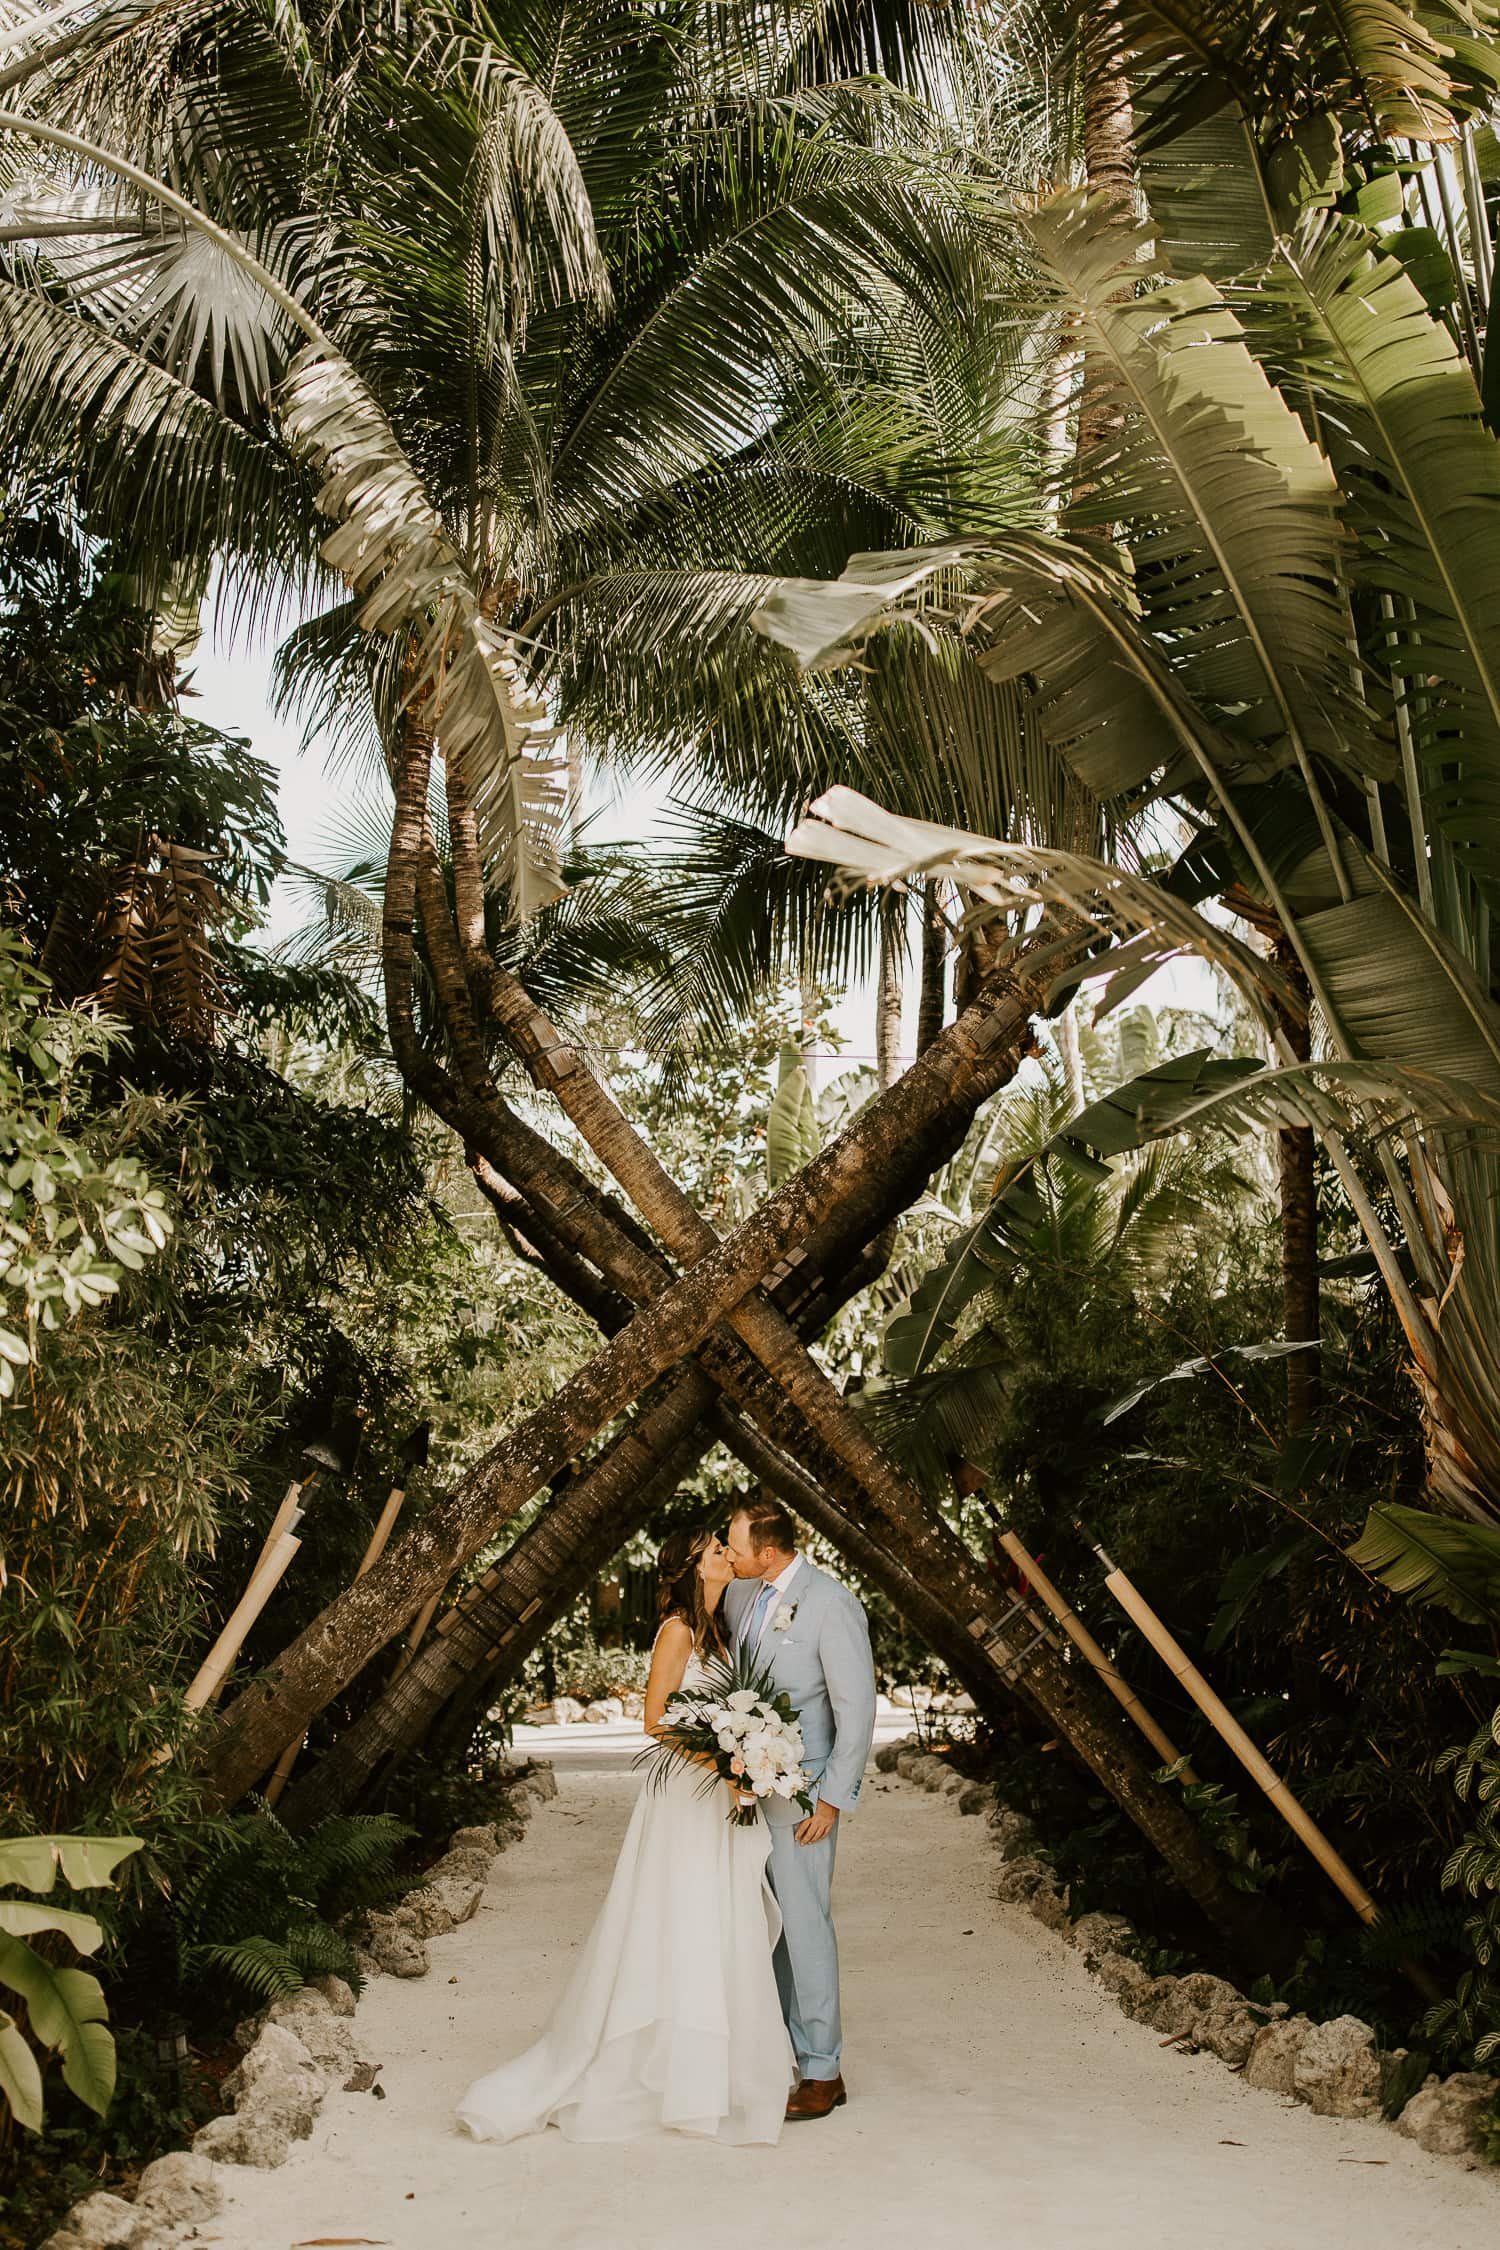 Bride and groom kissing under palm trees at Cheece Lodge and Spa in the Florida Keys.